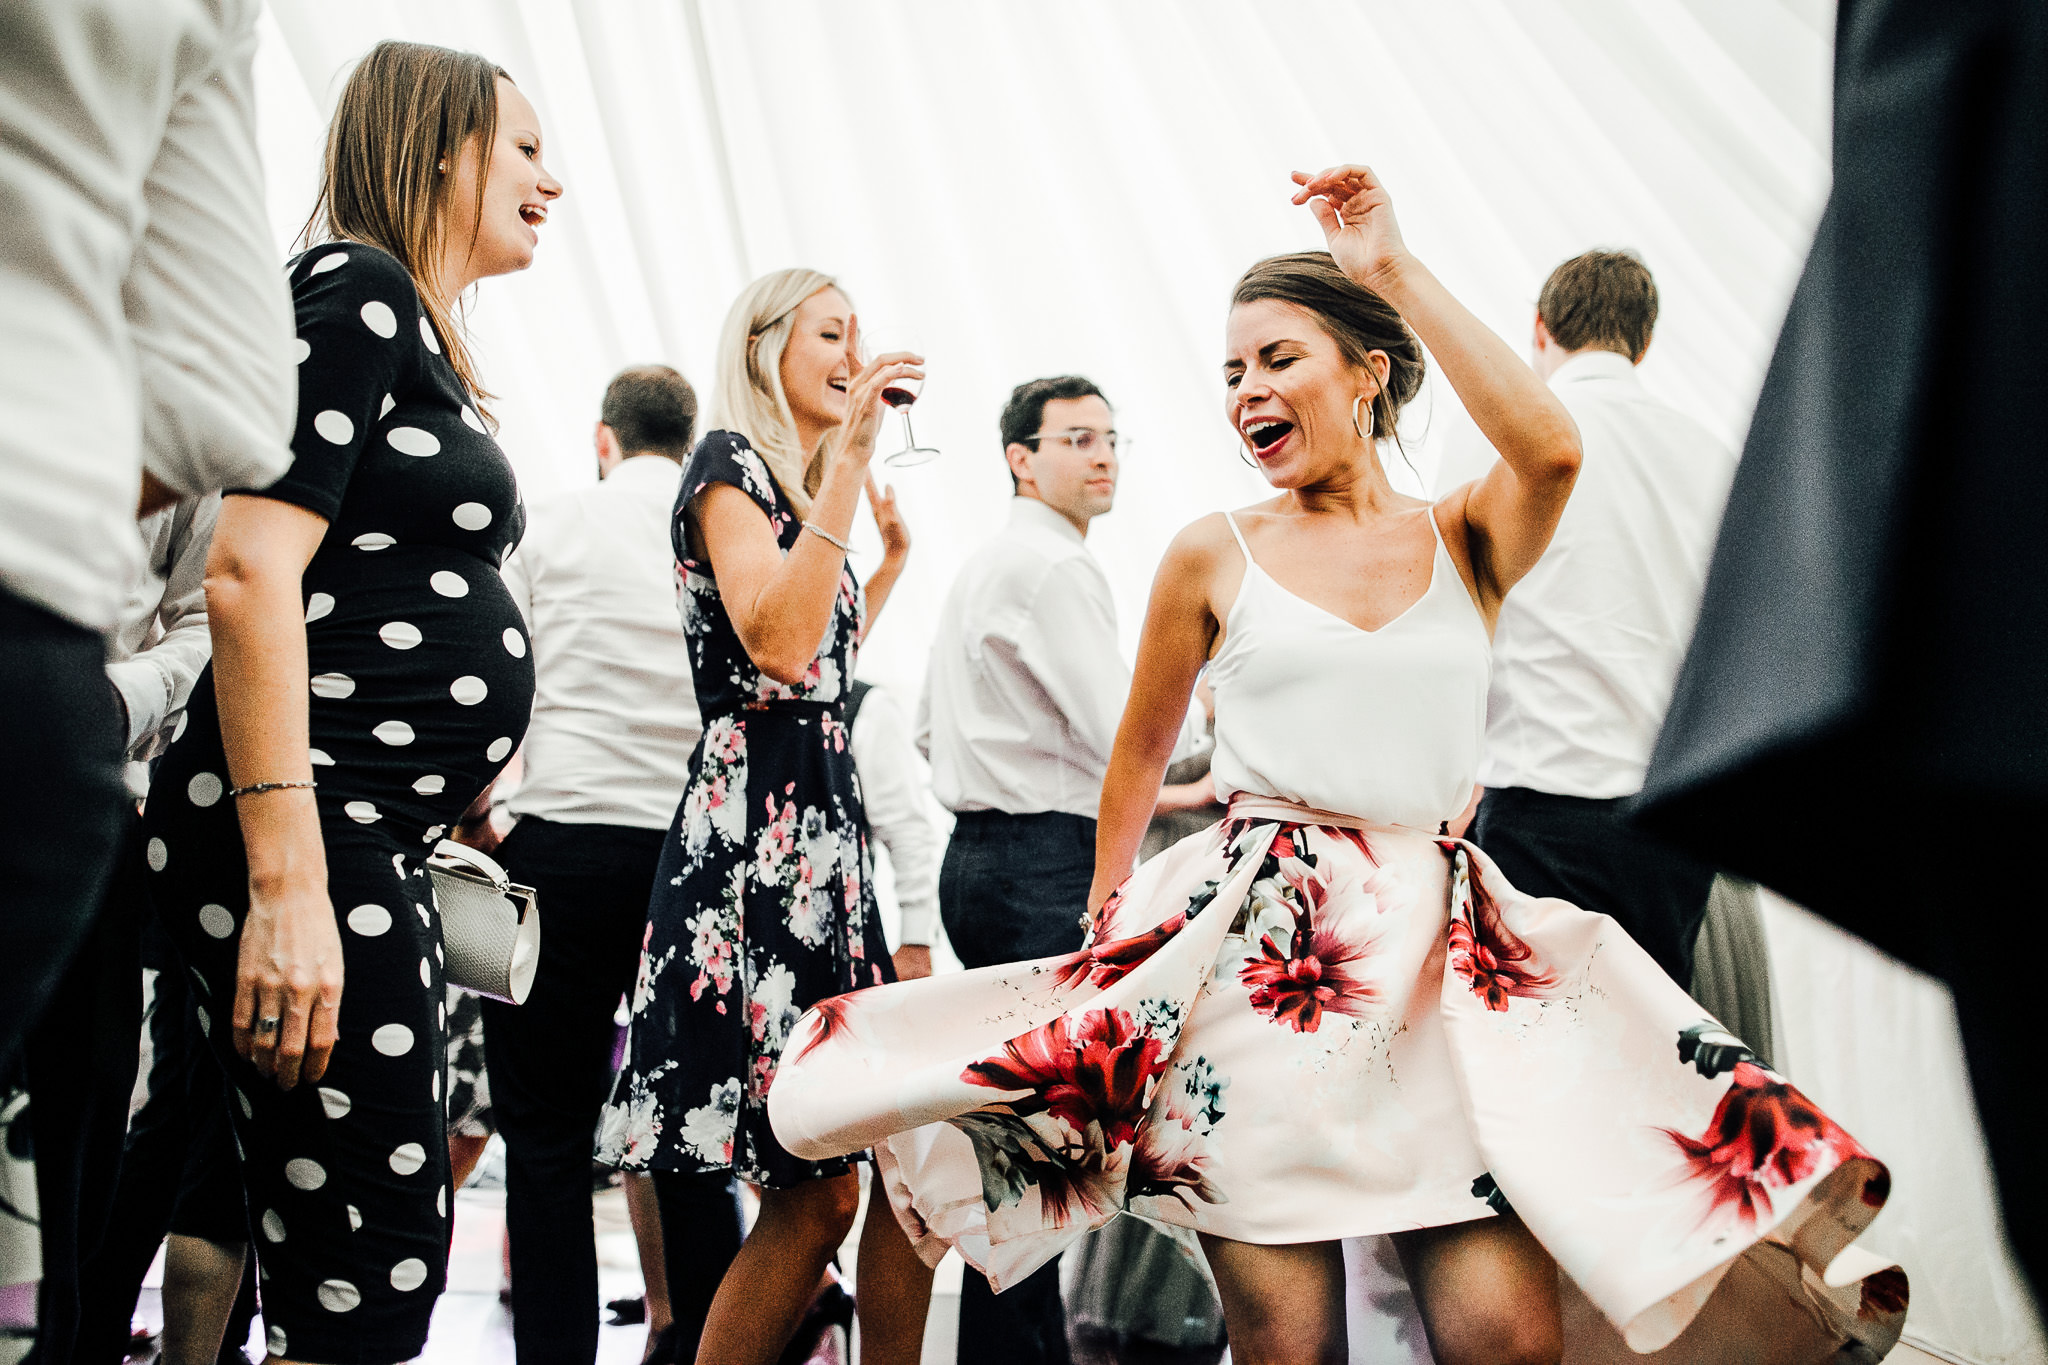 awesome dance shots at weddings